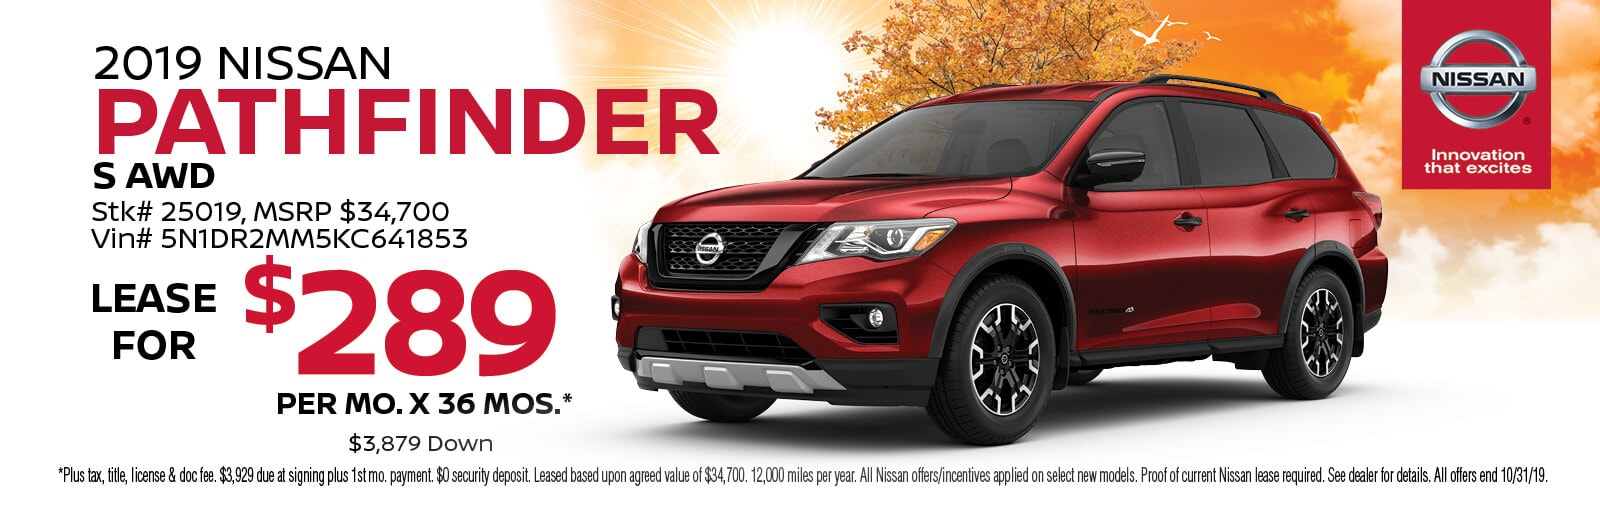 Lease a 2019 Nissan Pathfinder S for $289/mo. for 36 mos.